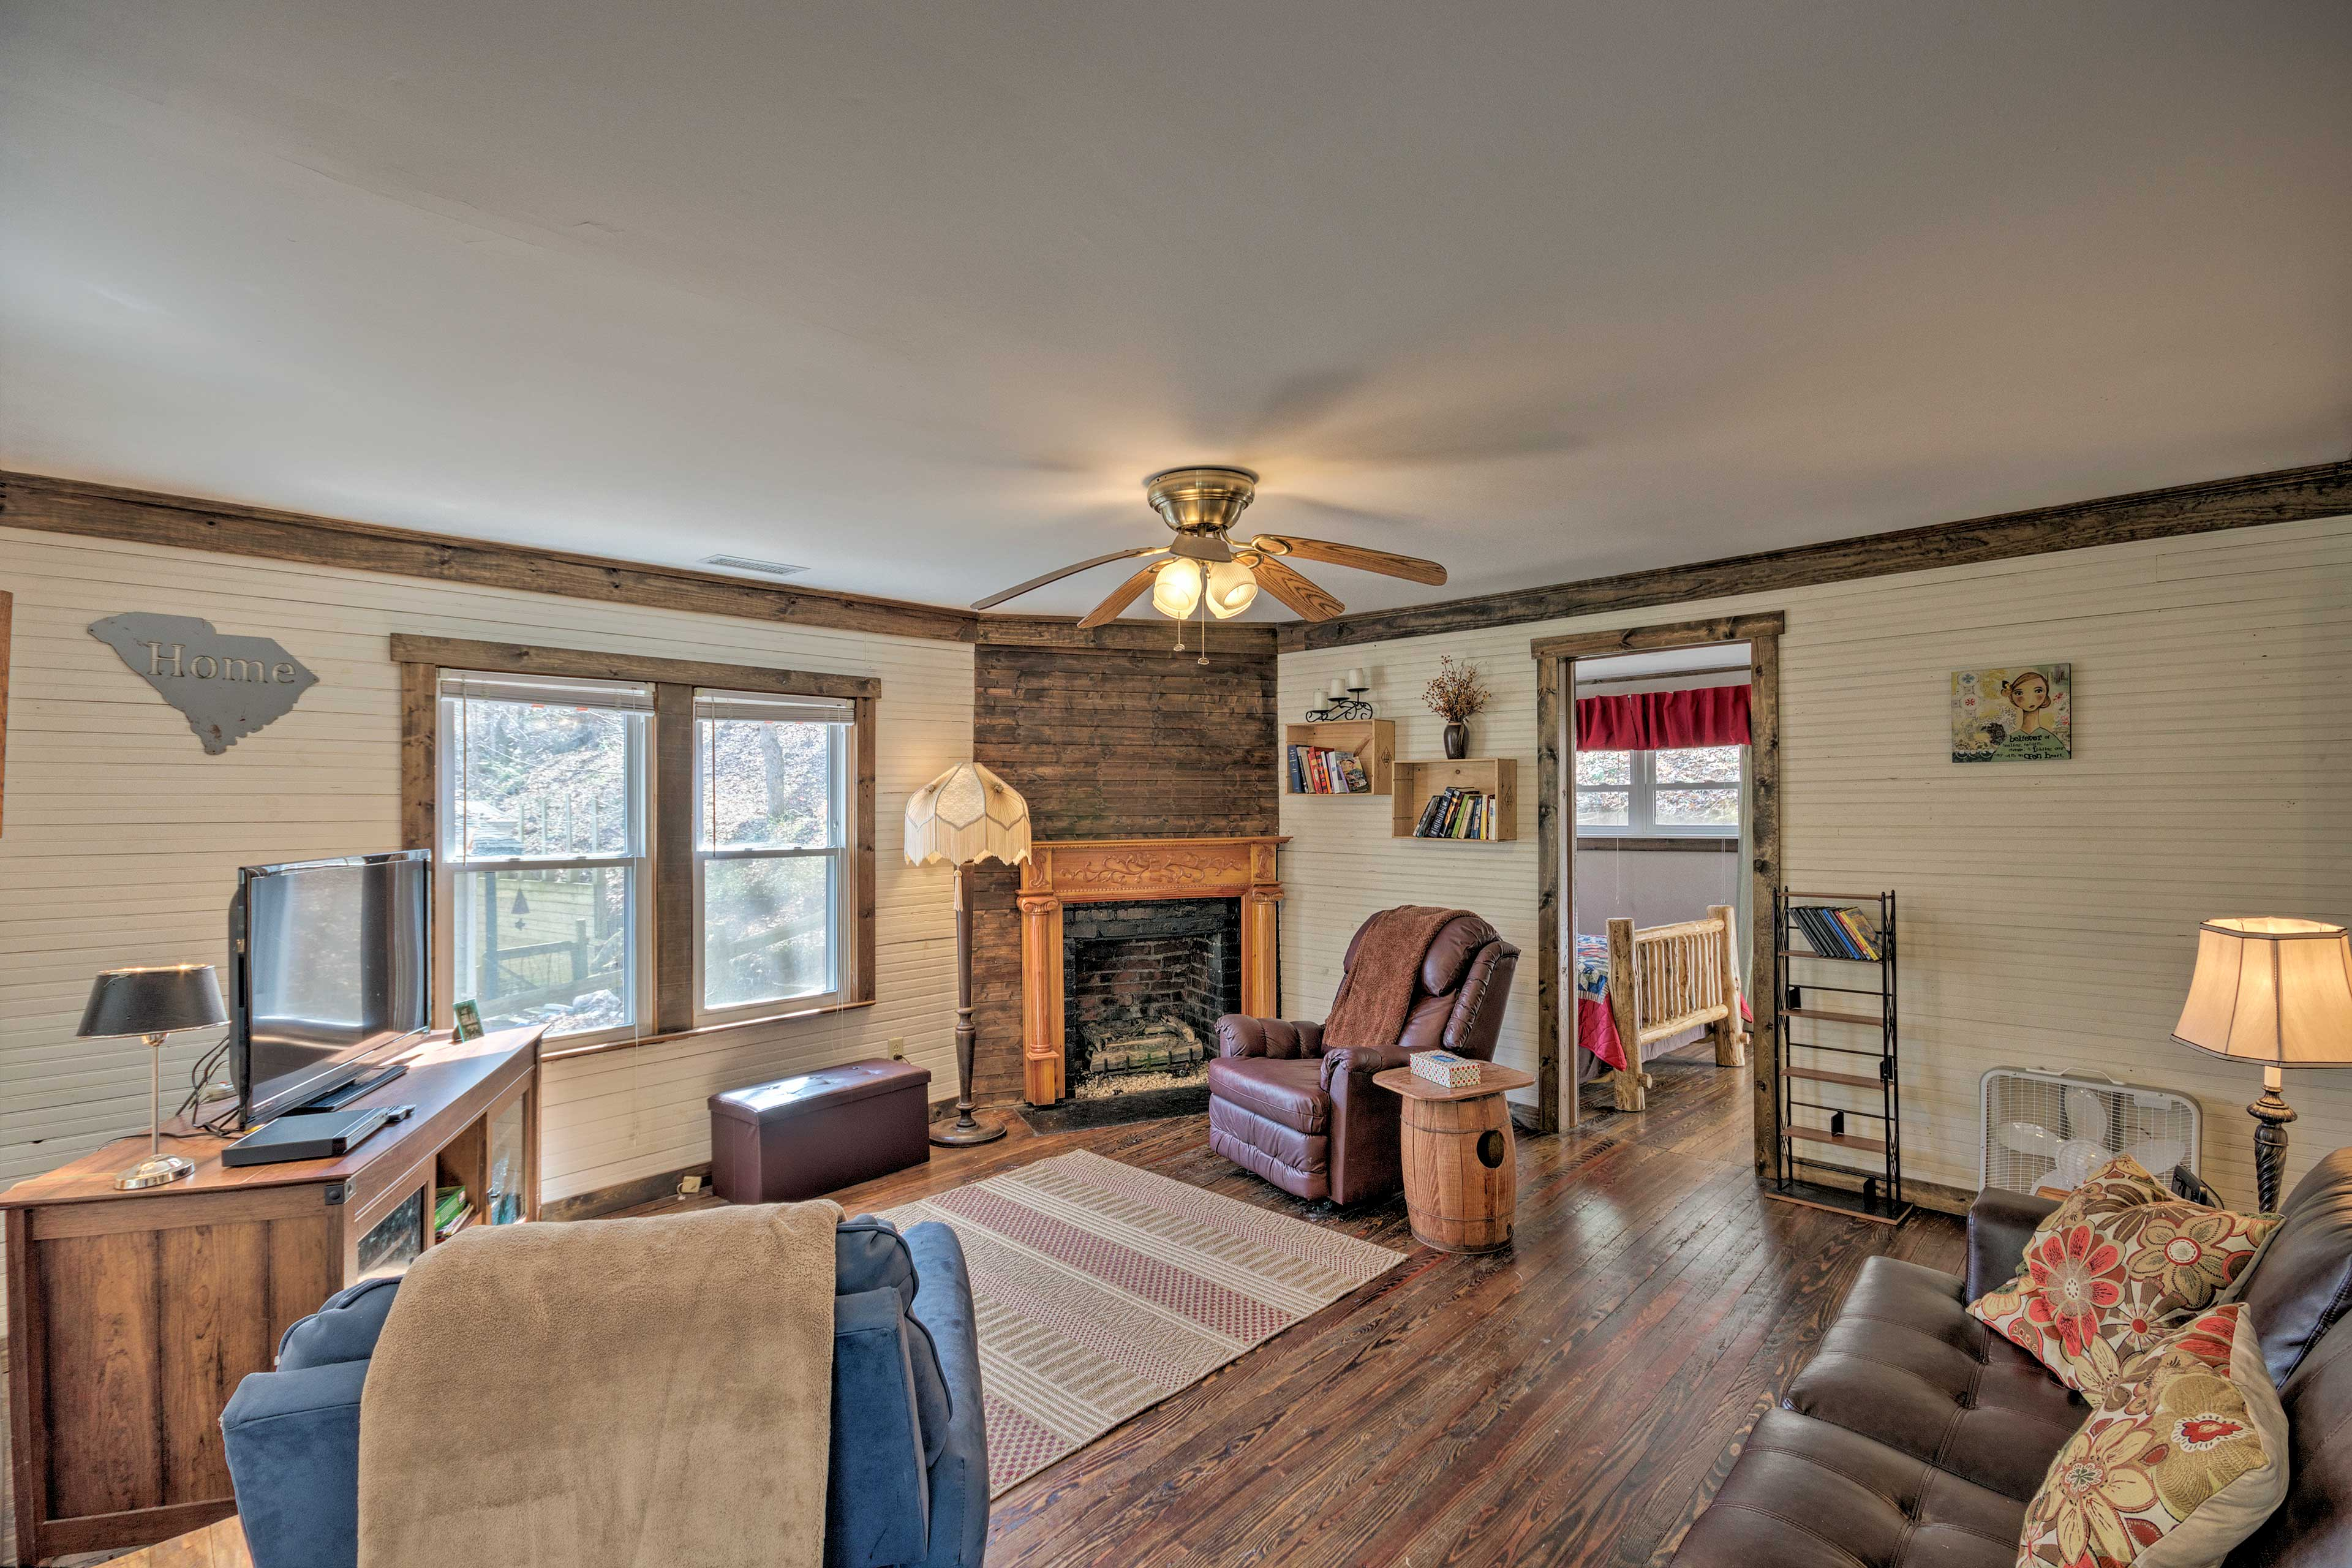 The home features hardwood floors and a flat-screen TV.